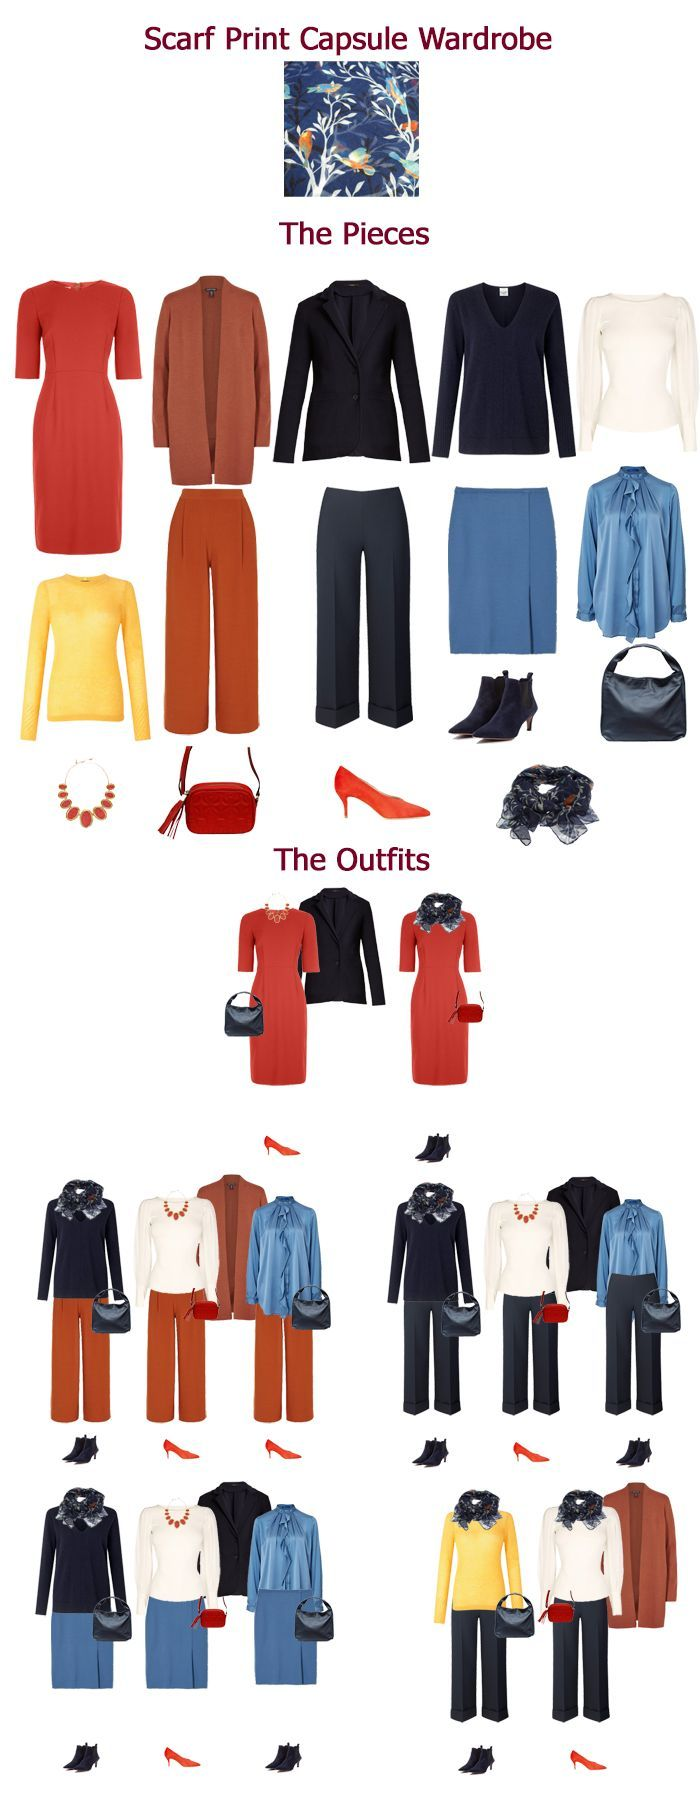 Autumn capsule wardrobe inspired by a scarf print